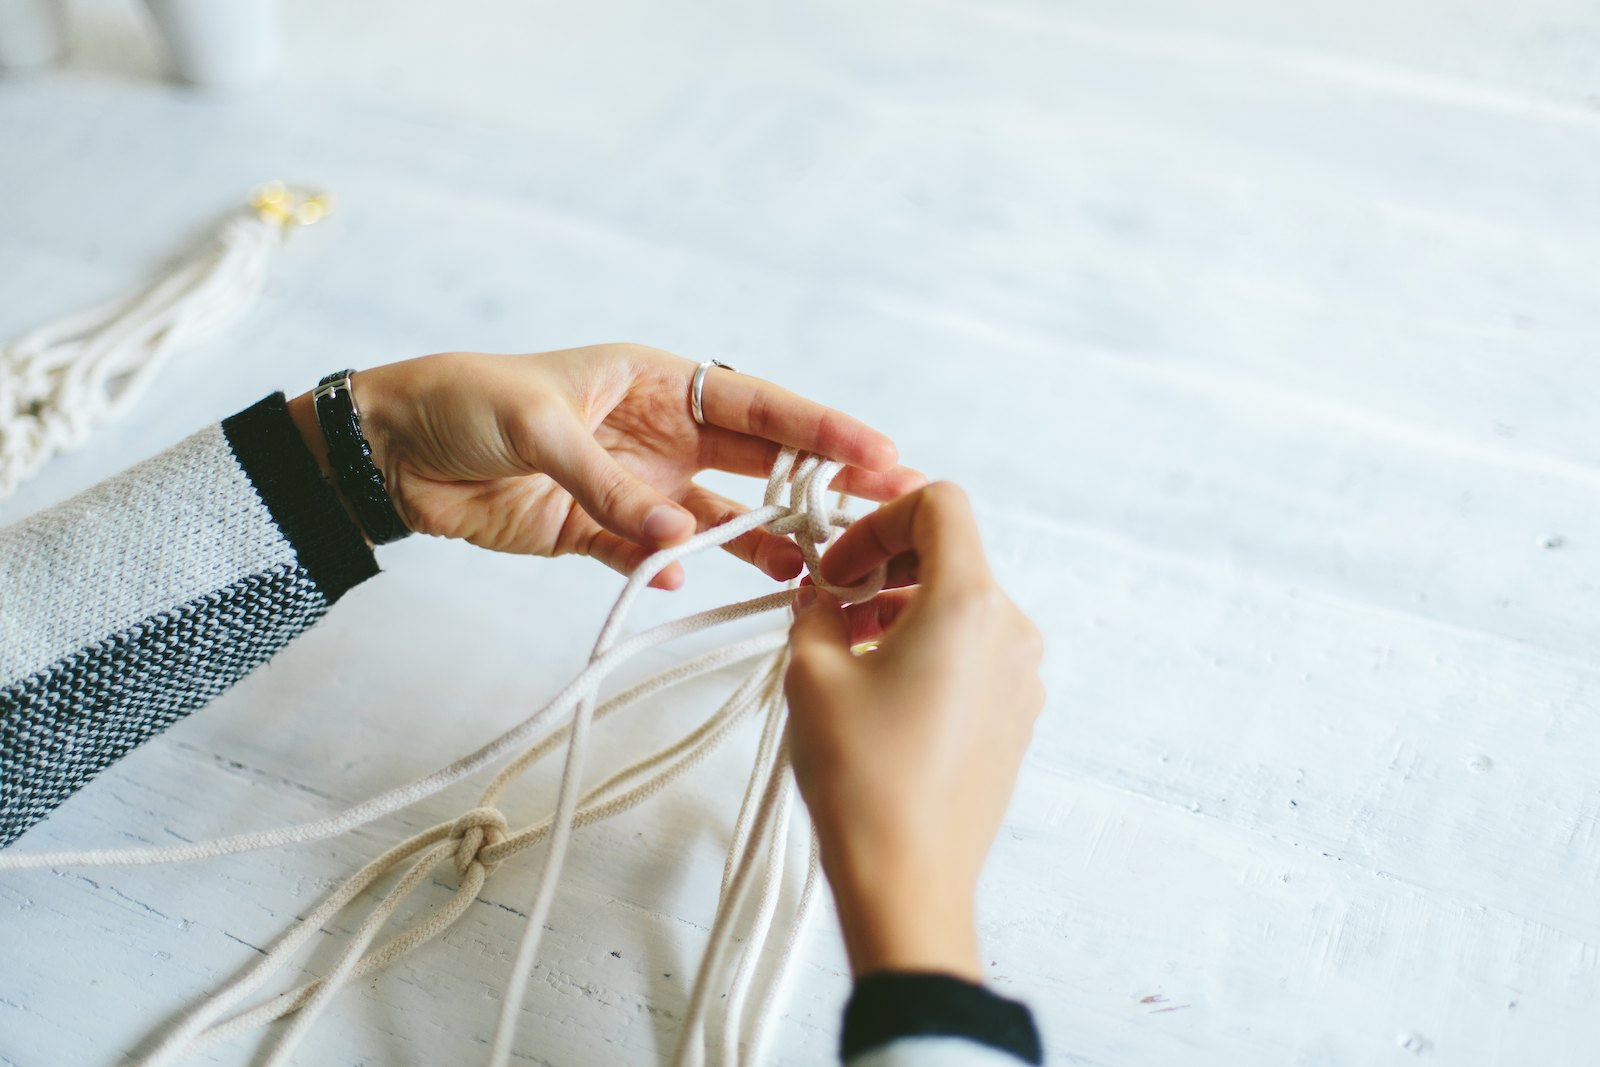 Give your space some homemade love with these DIY decor classes